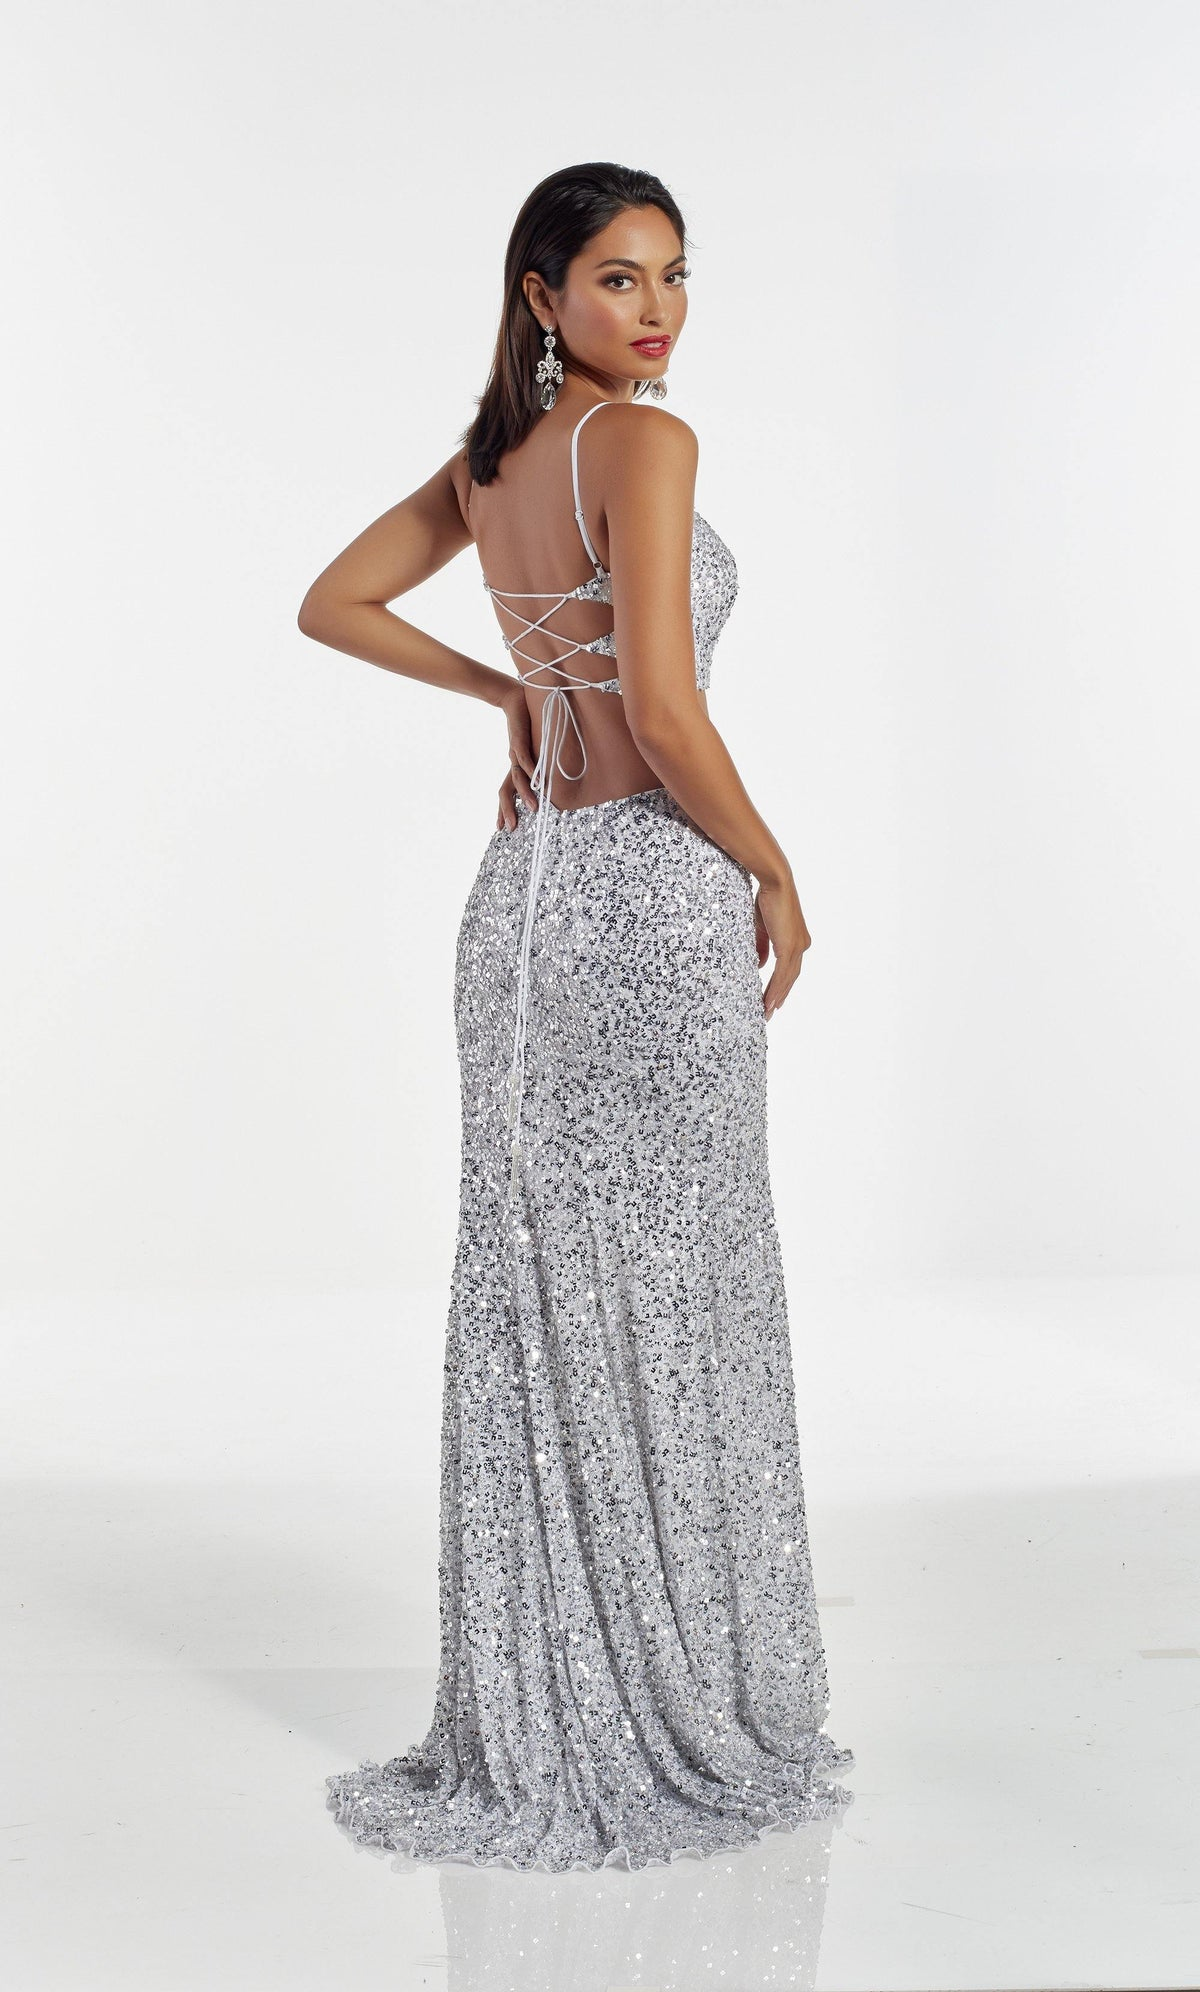 Fully beaded Silver two piece prom dress with a strappy back and train